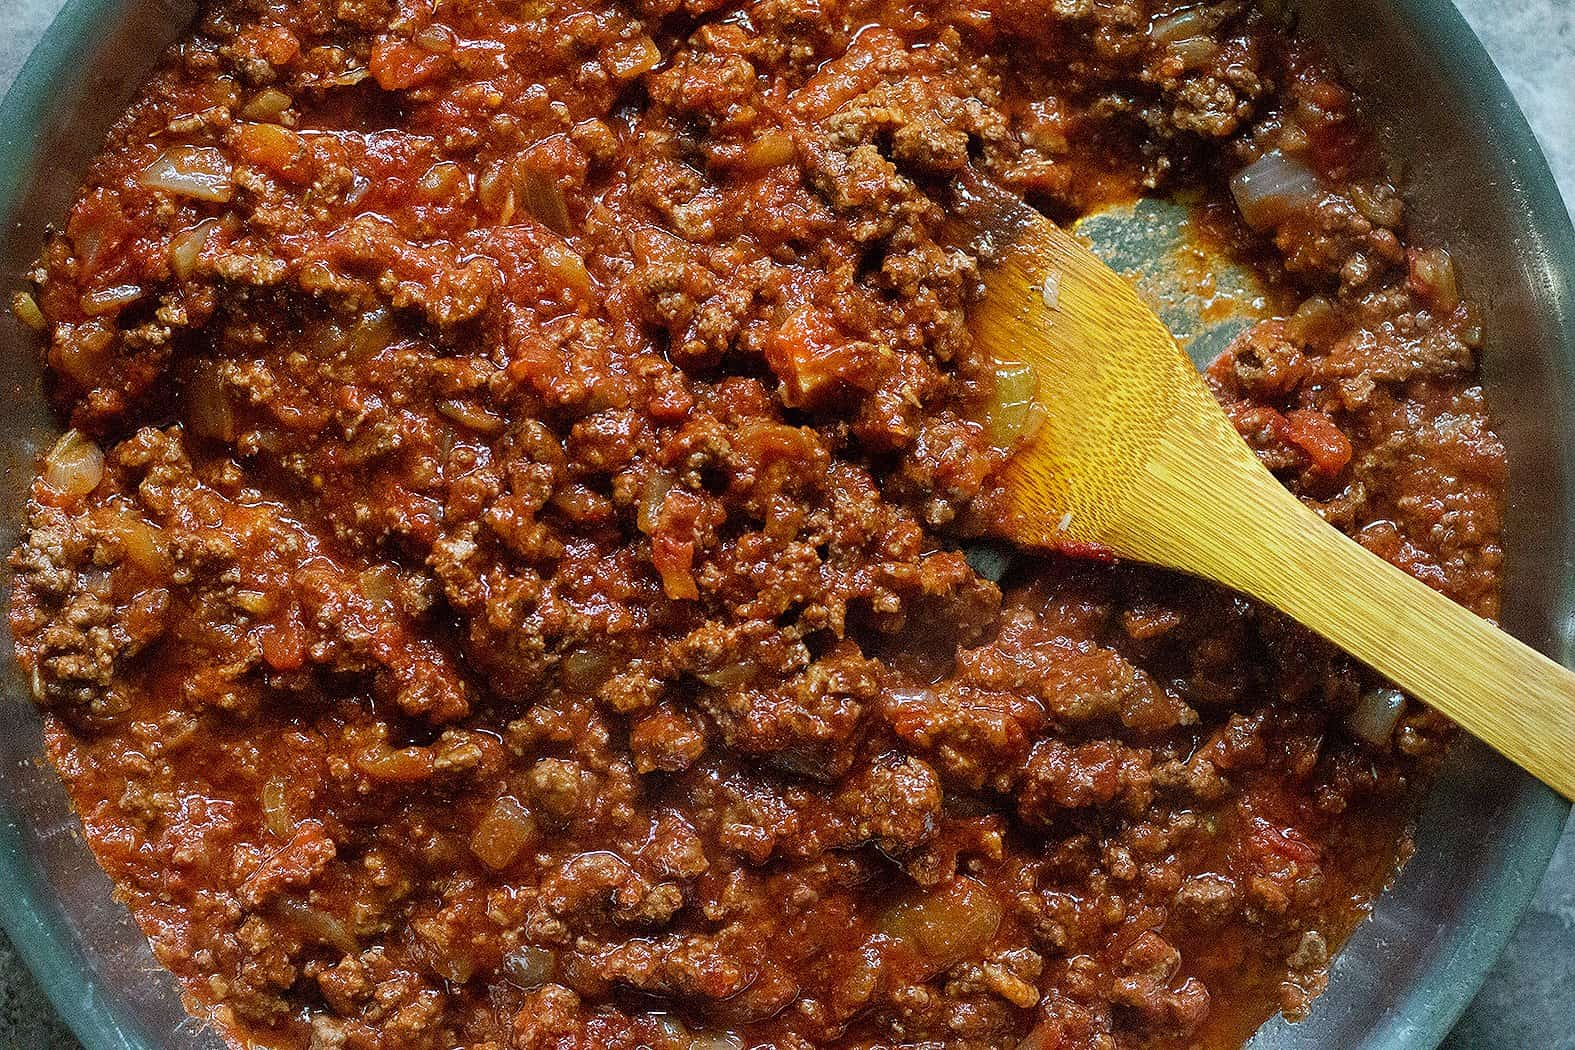 Add tomato paste and crushed tomatoes.